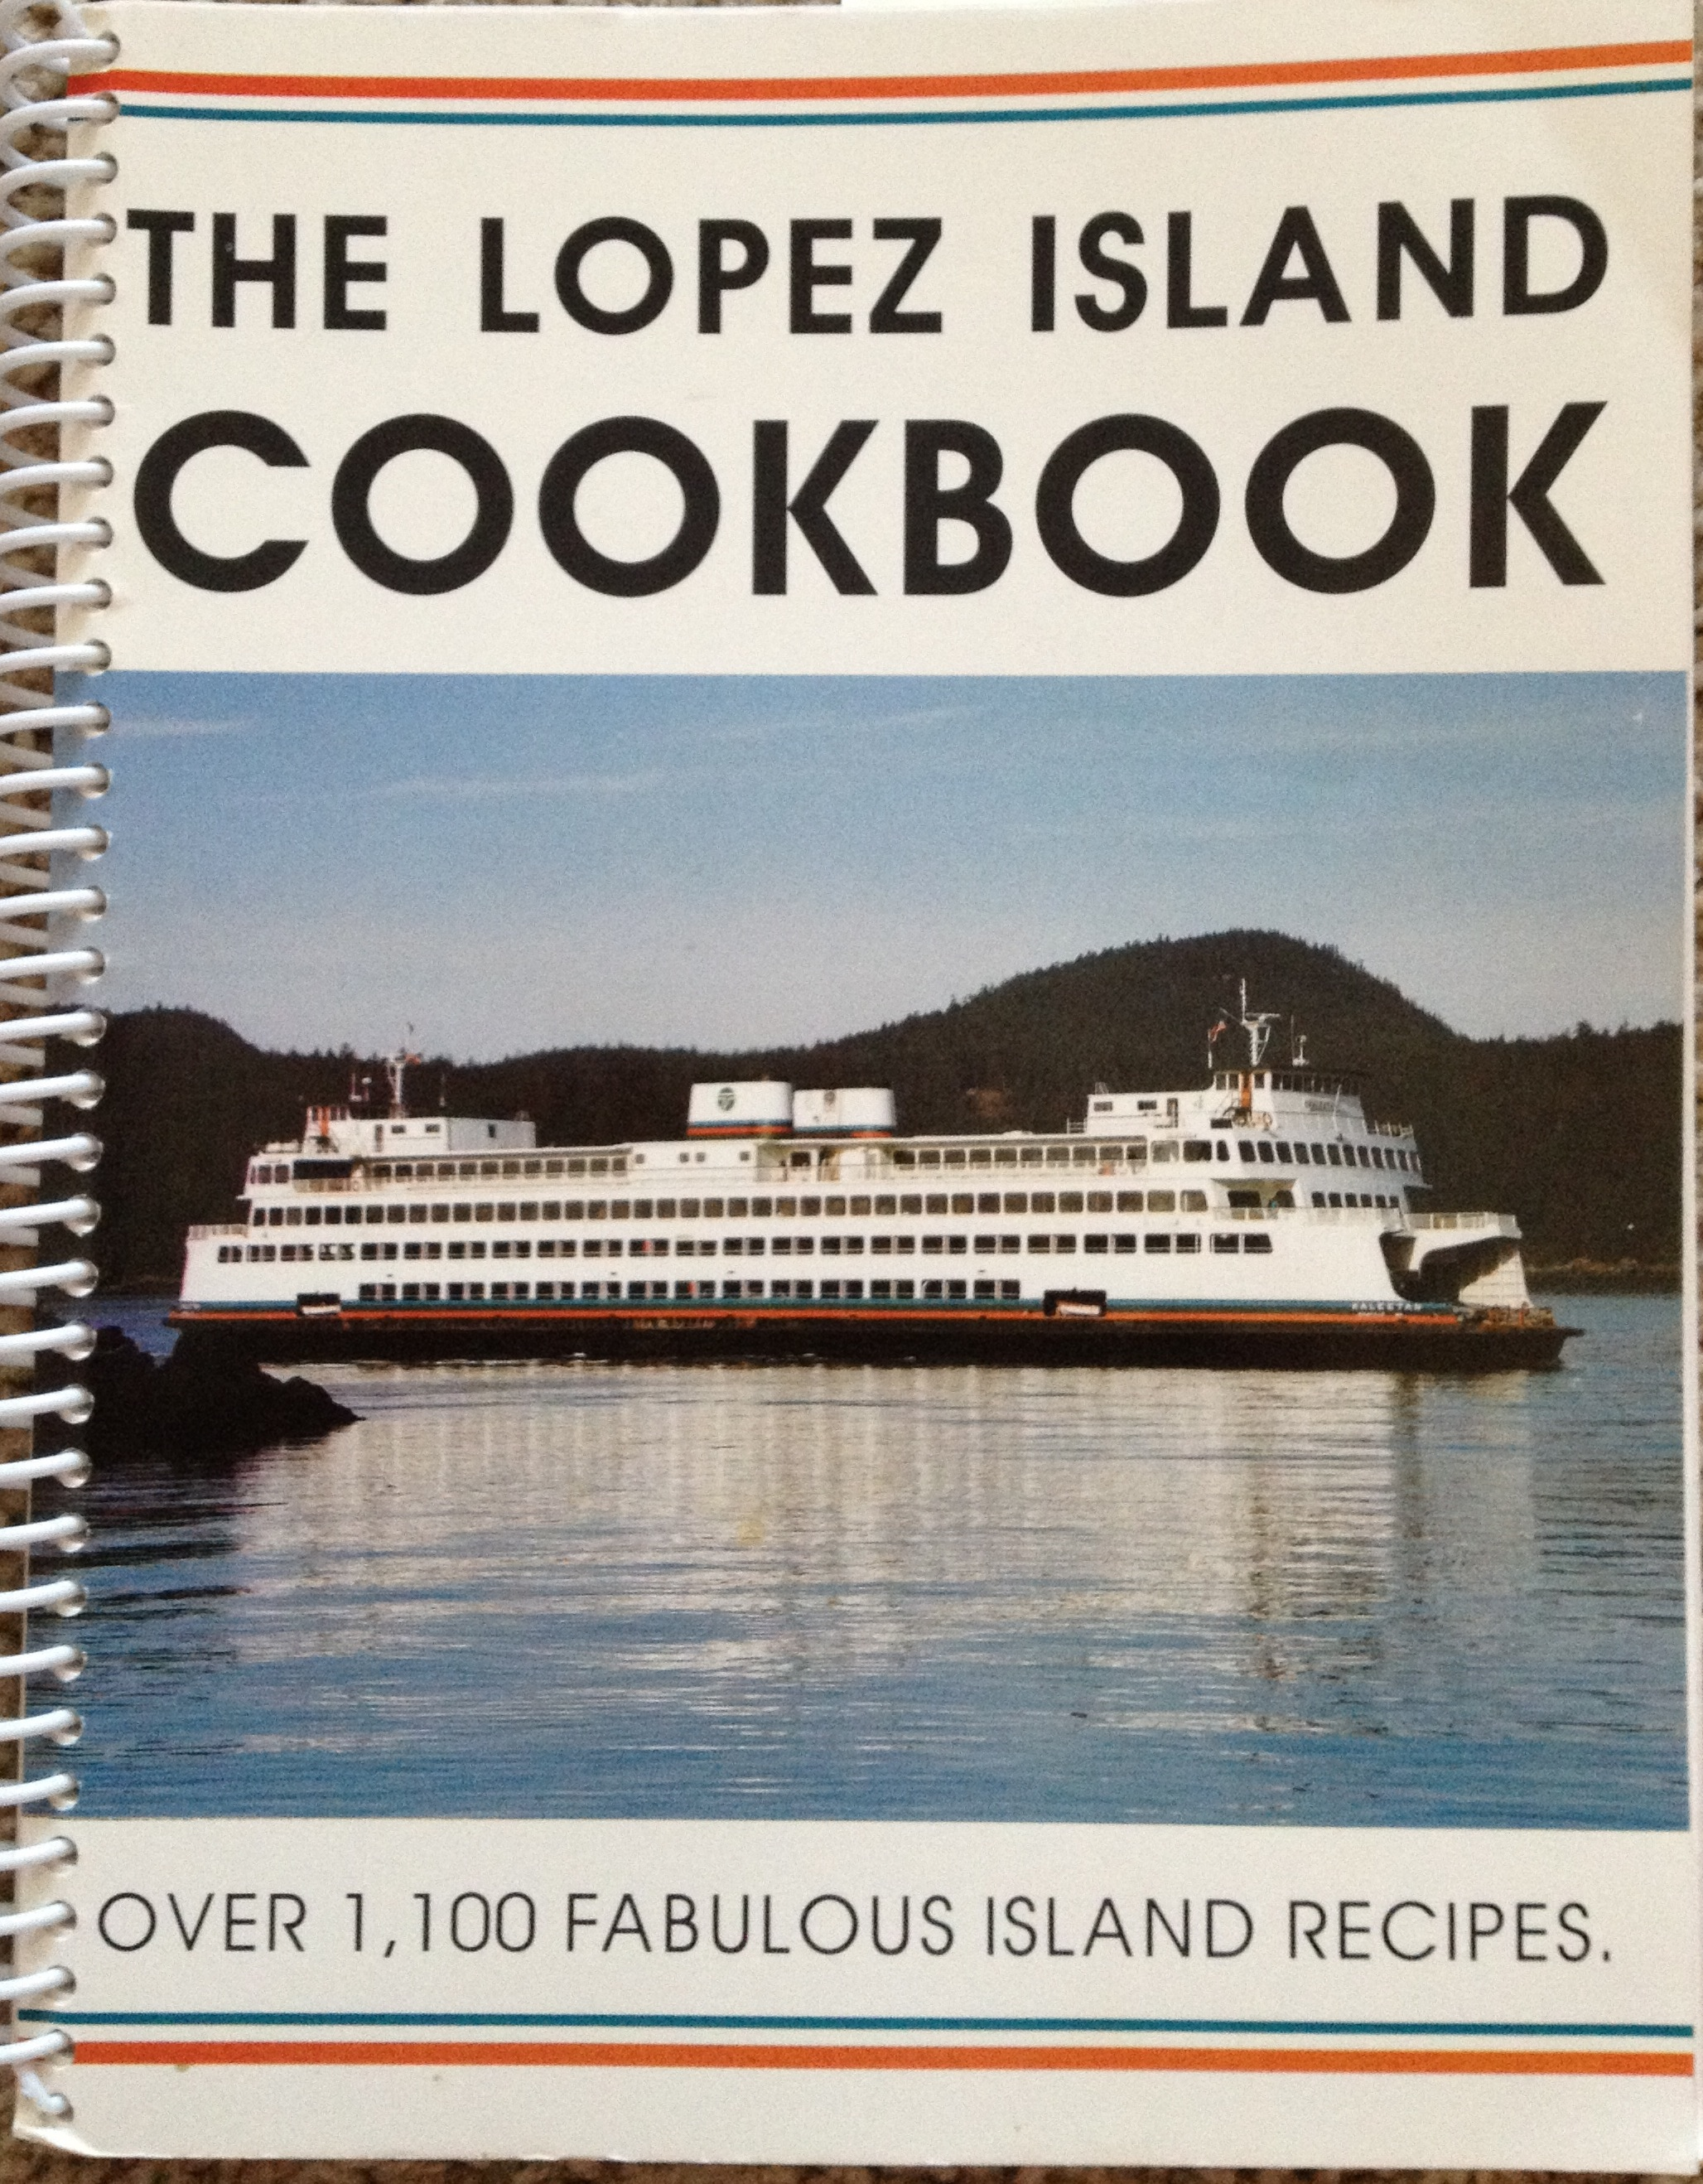 Lopez Island, Washington state, San Juan Islands, houstory publishing, family heirloom, family cookbook, family recipe, heirlooms, heirloom, family stories, family history, genealogy, family cookbook, keepsakes, keepsake, heirloom registry, legacy, nostalgia, inheritance, treasured belonging, antiques, antique, provenance, heritage, tradition, historical preservation, family valuables, sentimental value